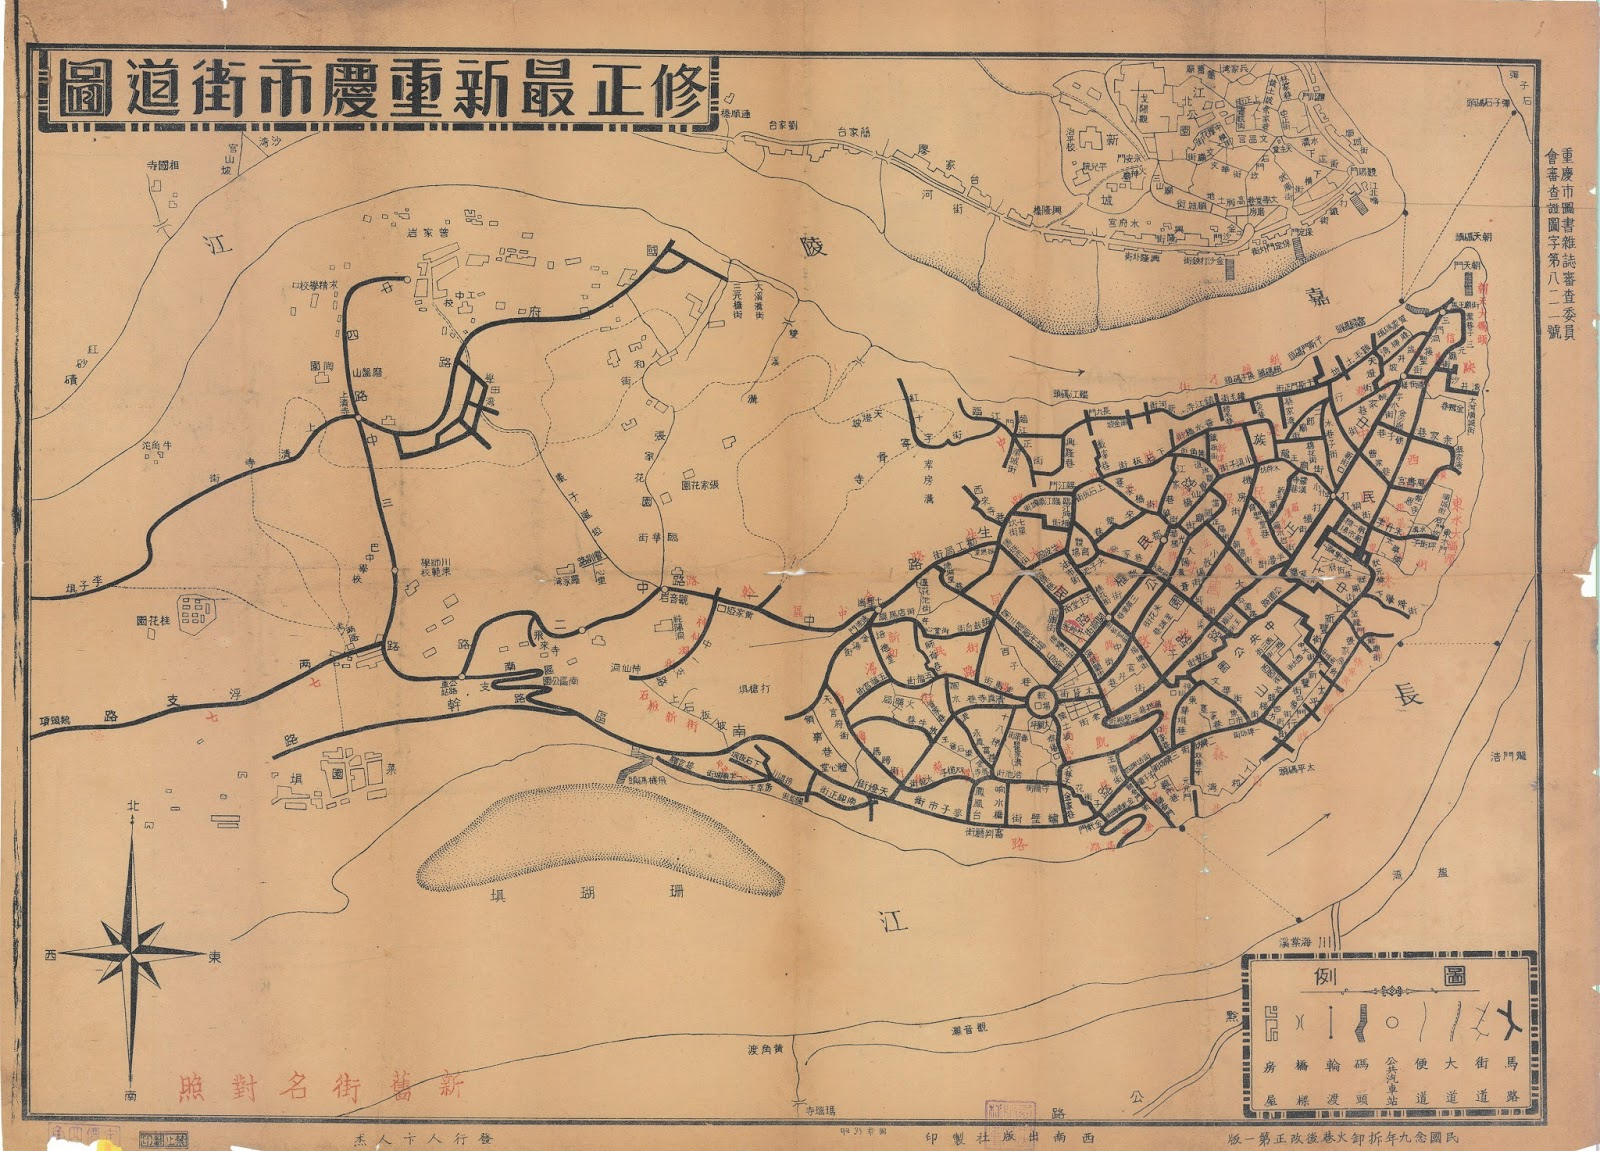 this map shows the chongqing city in 1925 where the city was constructed on the peninsula